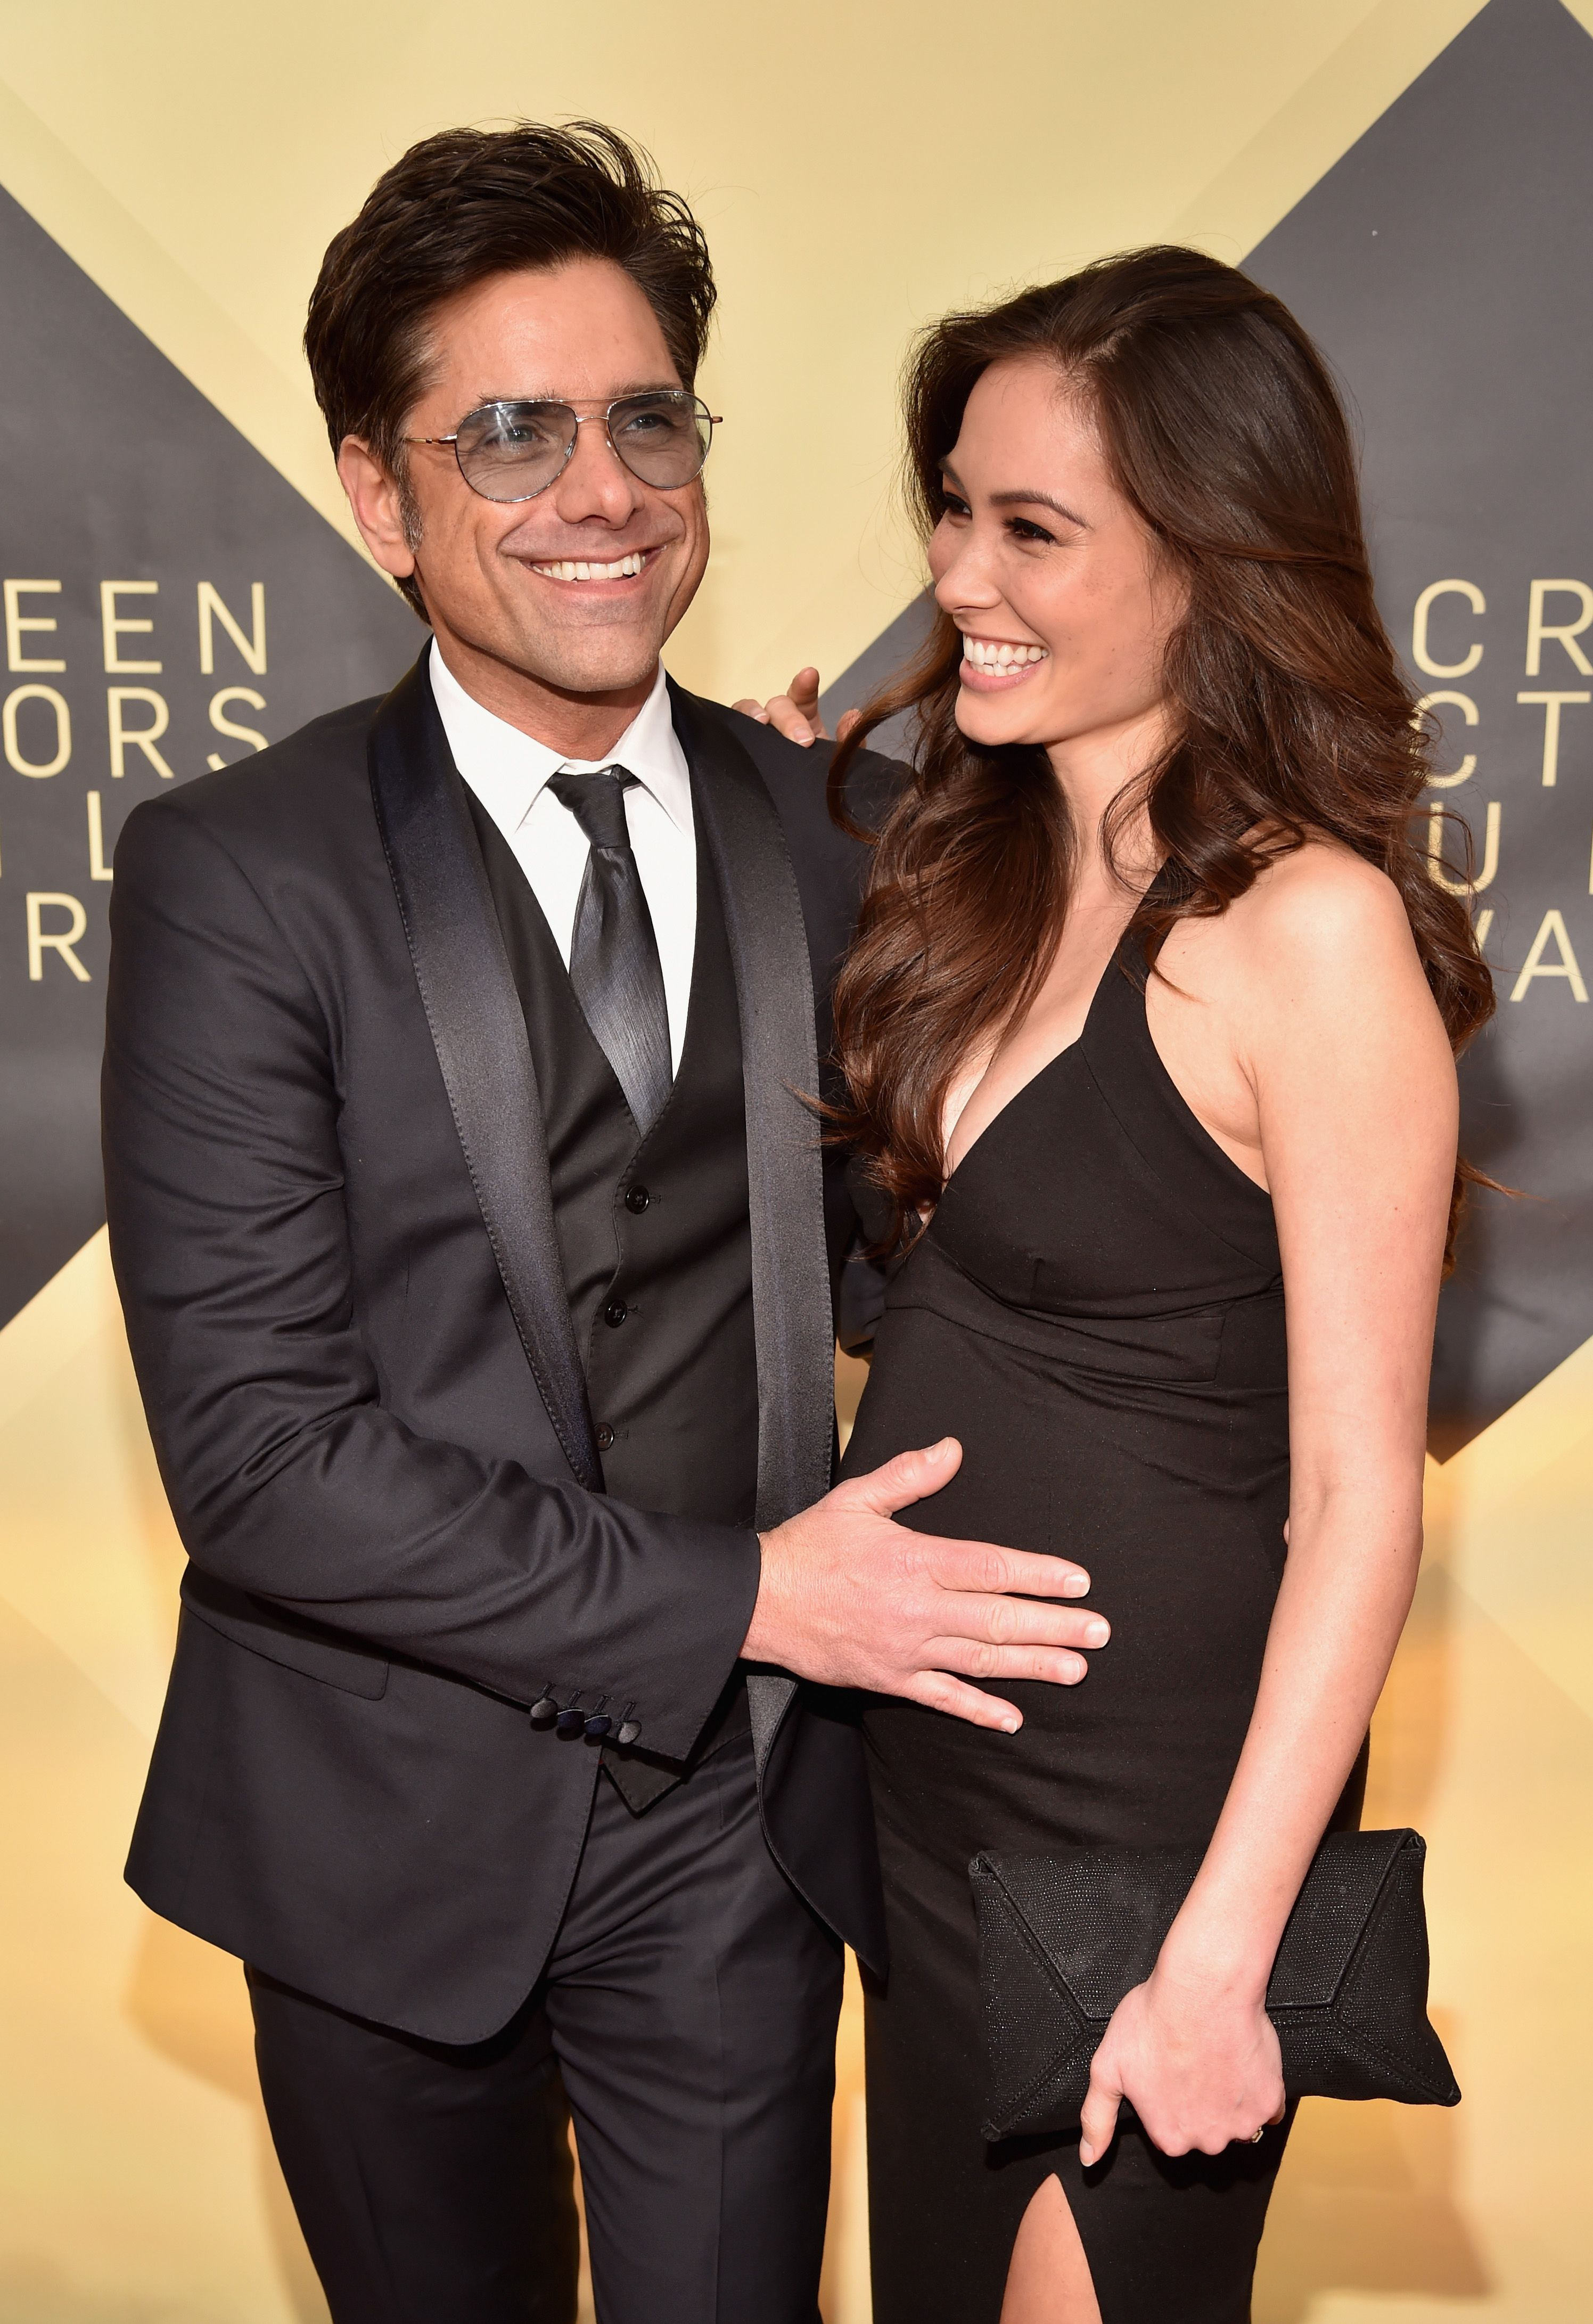 How John Stamos And His Wife Caitlin McHugh Met Is So